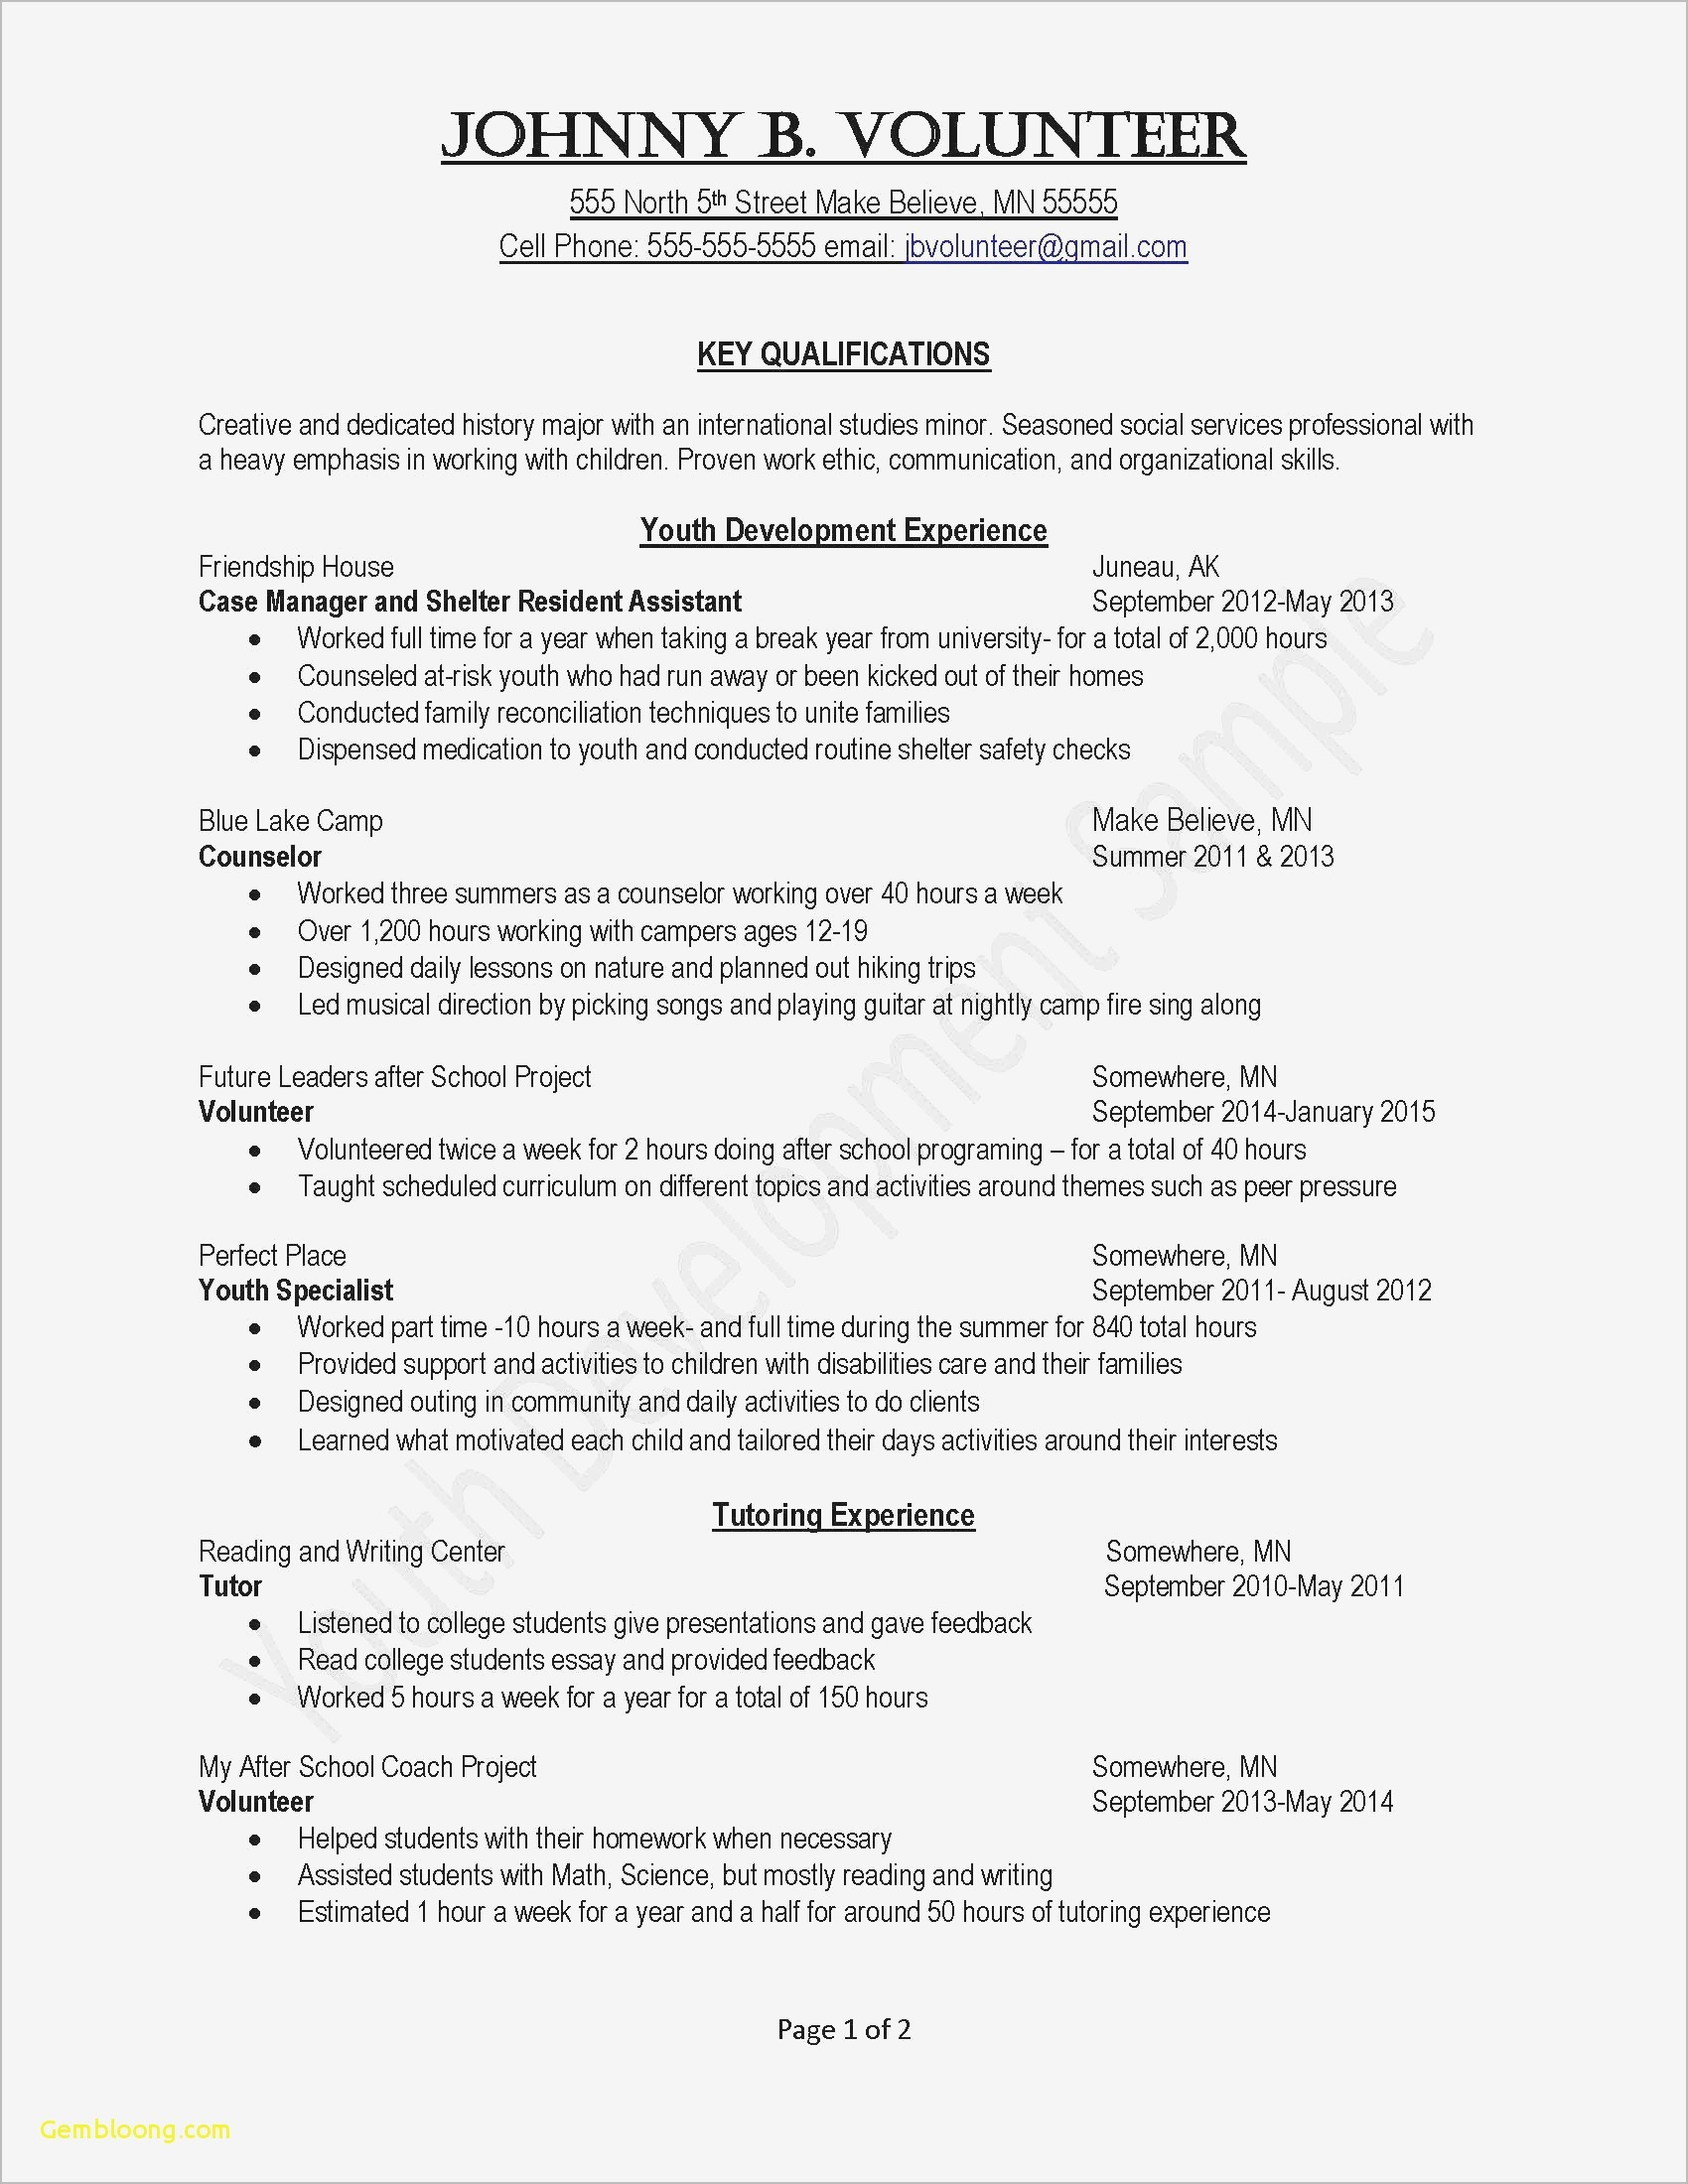 cover letter template word Collection-sample cover letter template word job fer letter template us copy od consultant cover letter fungram valid simple cover letter template 3h 12-r